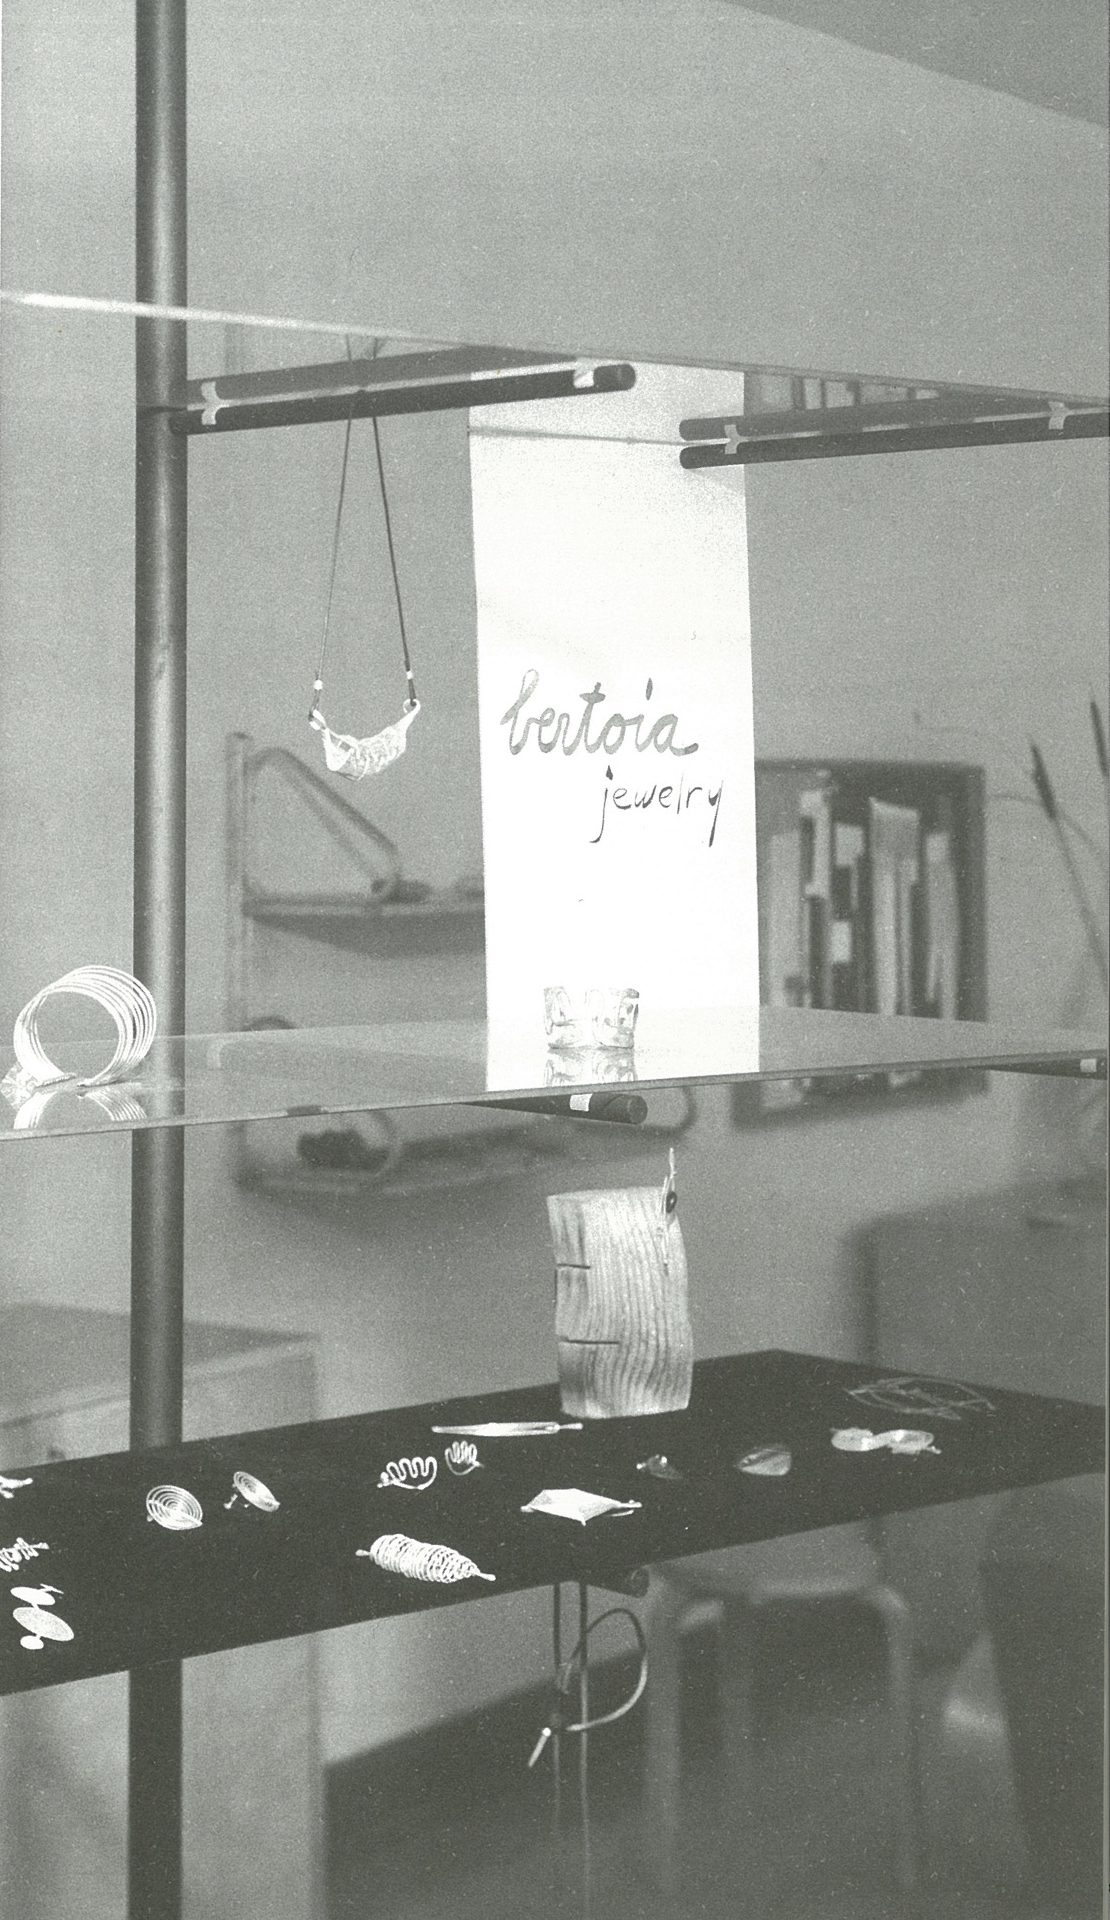 Making do: Harry Weese designed open shelving of floating glass and steel poles to display Bertoia jewelry